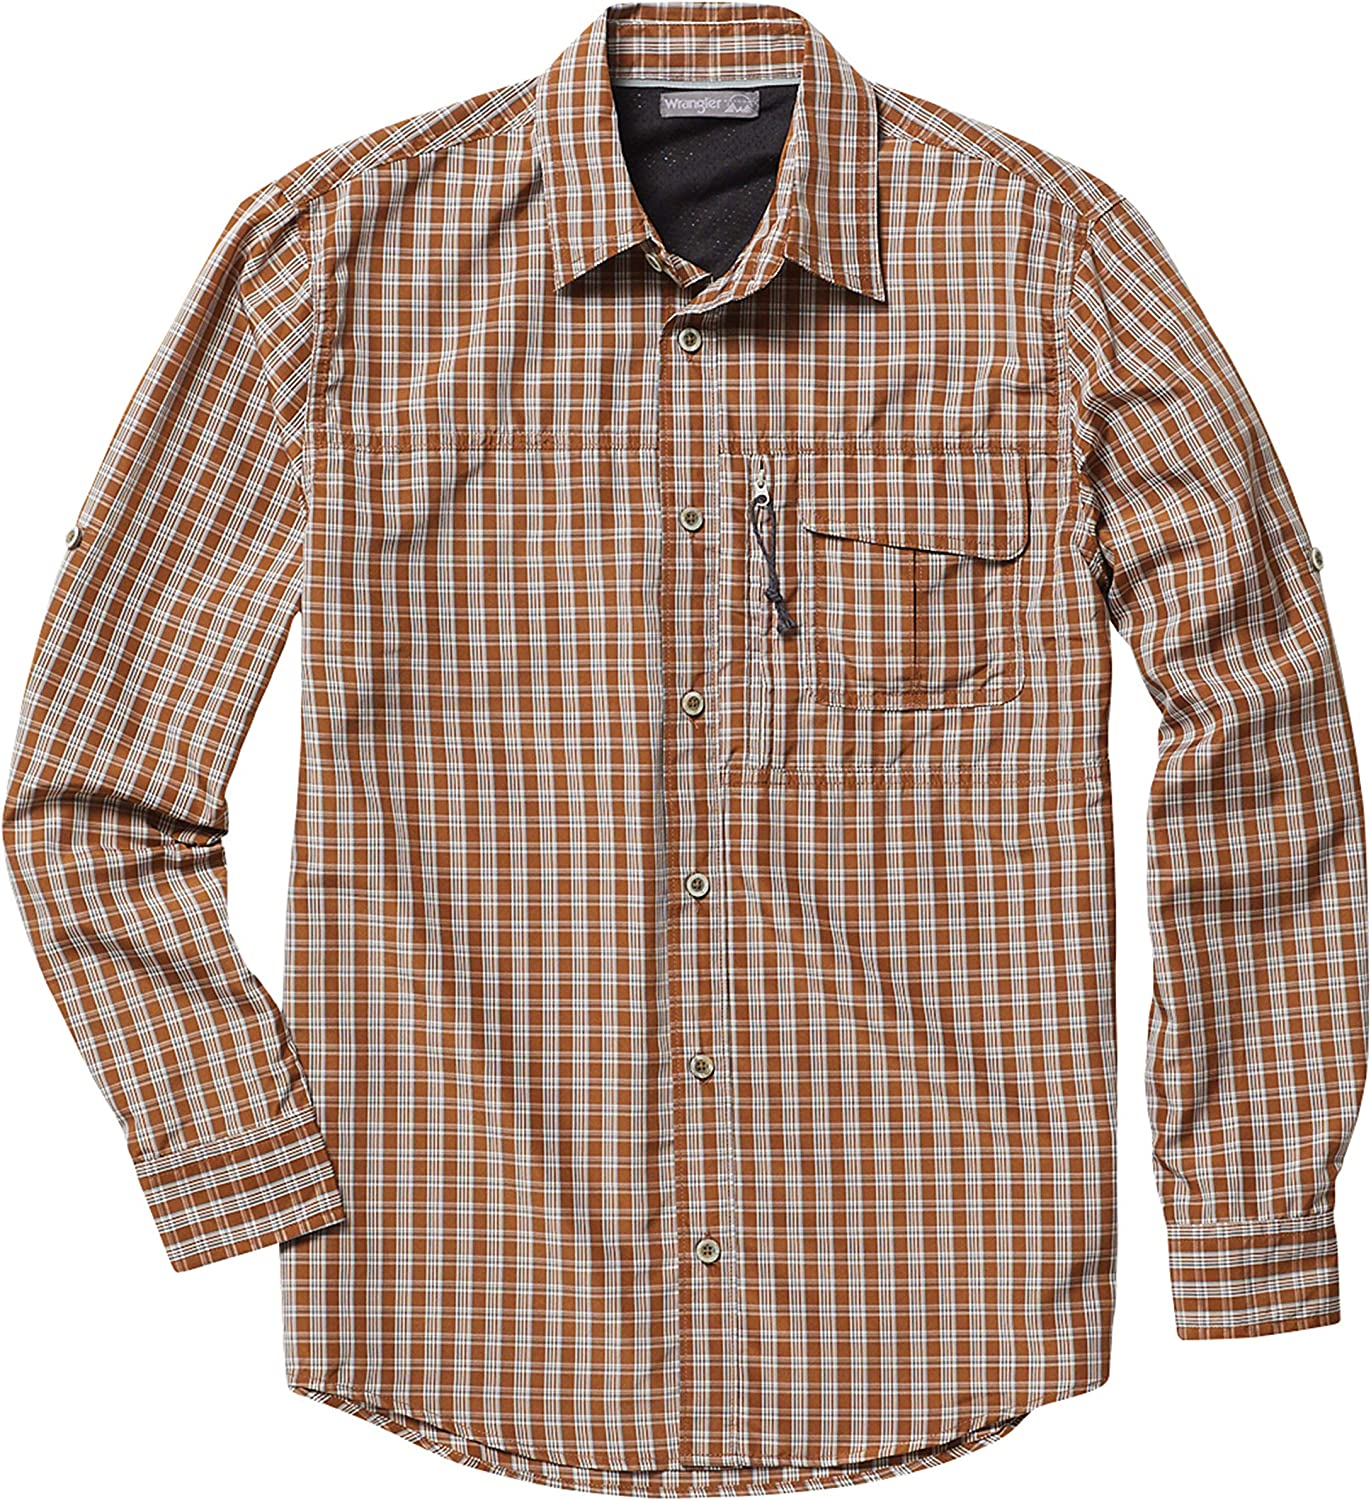 Wrangler Outdoor Men's Big and Tall Long Sleeve Utility Shirt, NSP93TF, Toffee Plaid